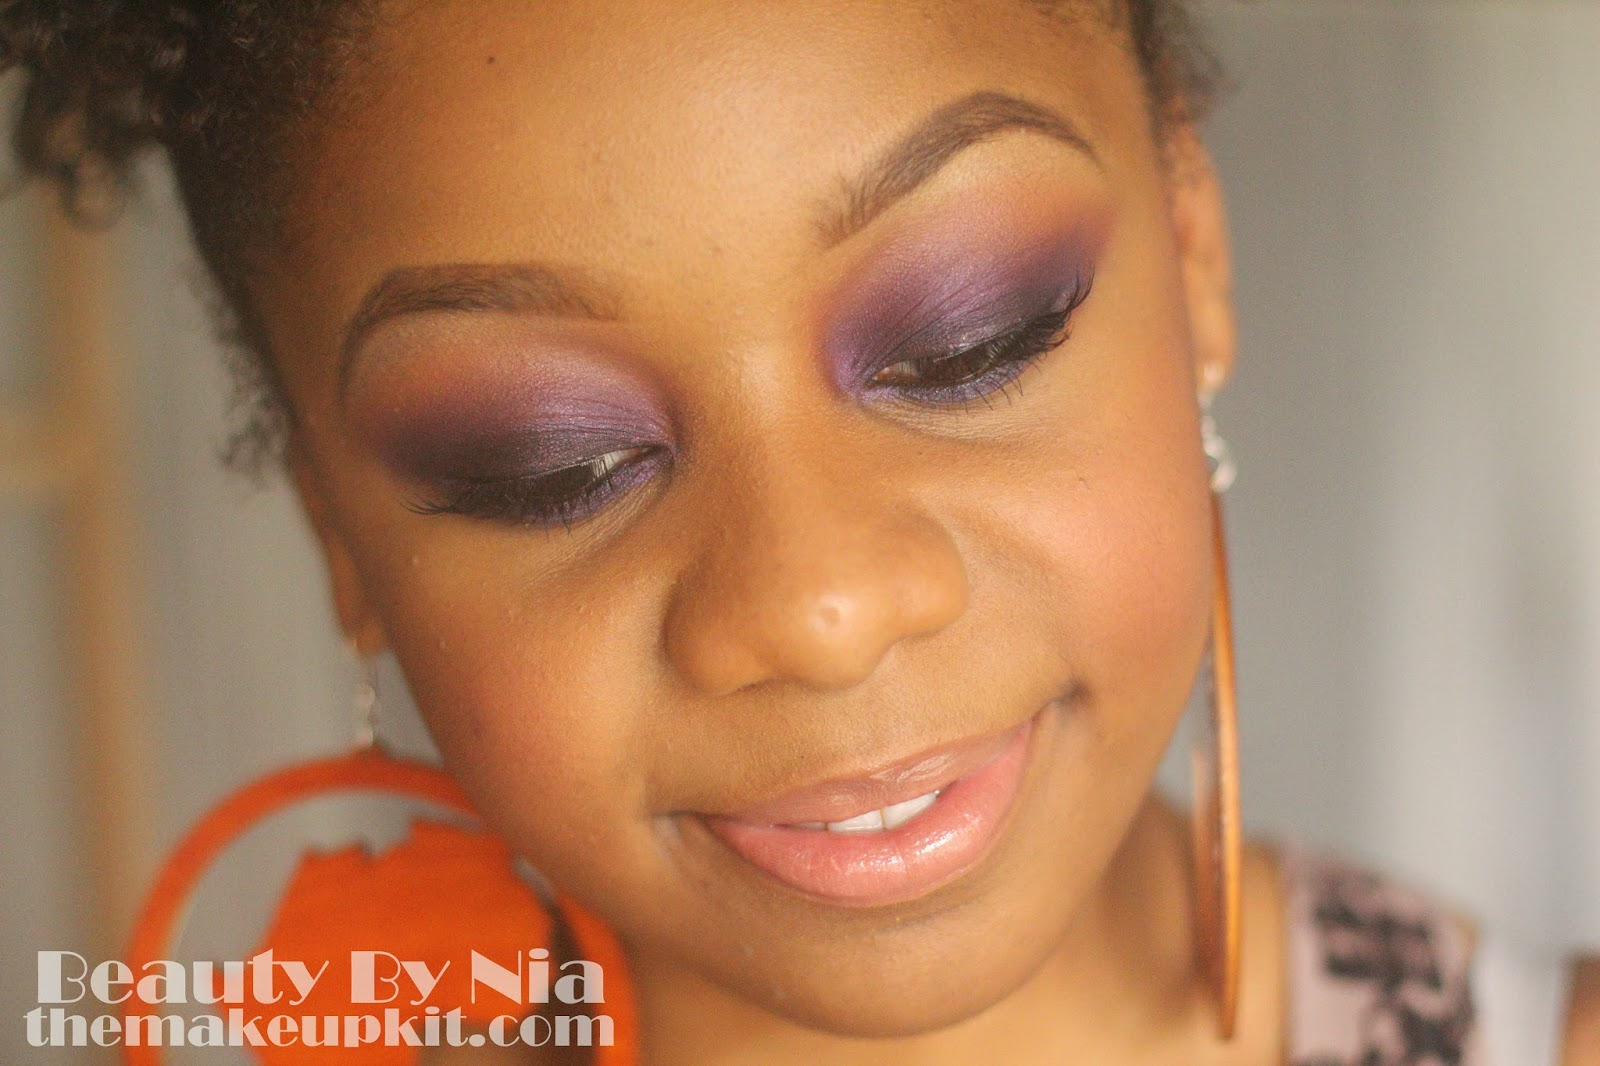 Smoked out purple eye make up look 6